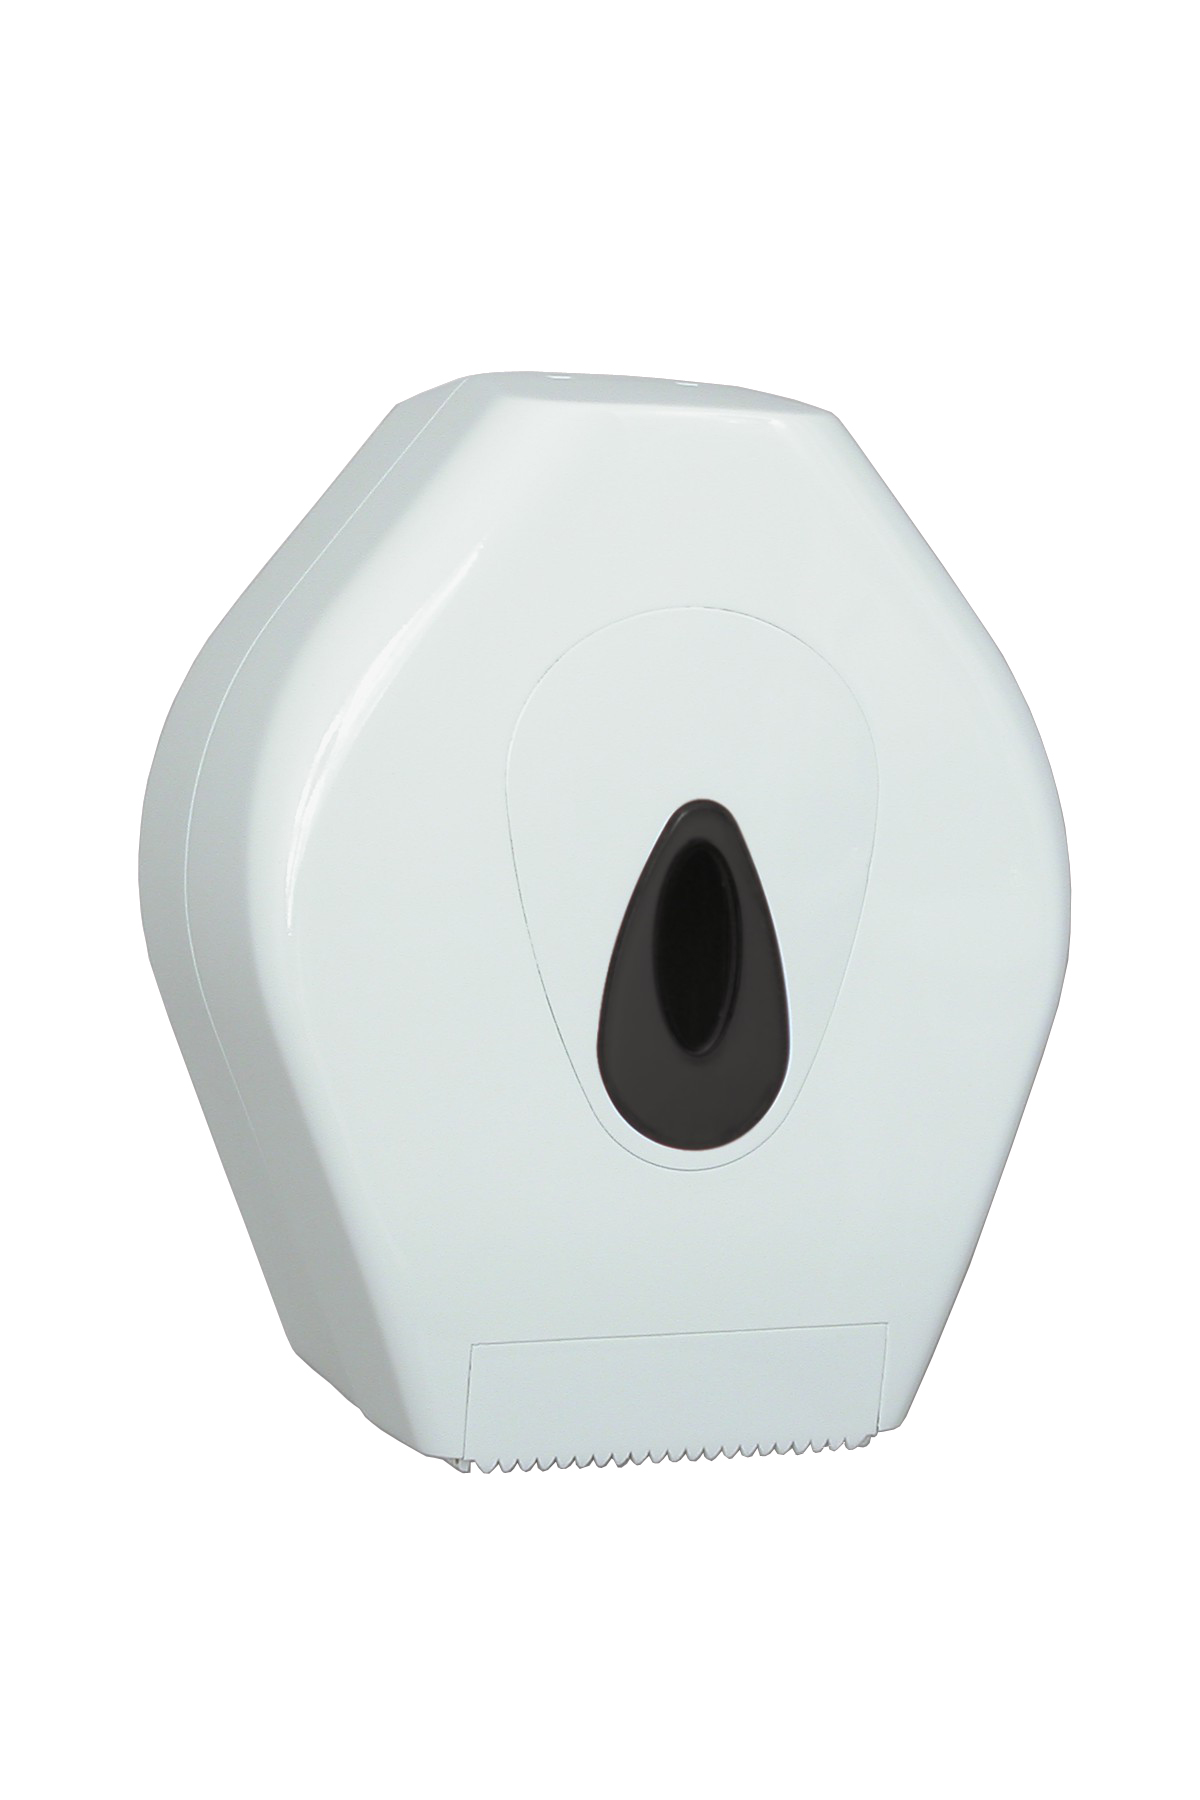 ALL CARE Dispenserline - Toiletroldispenser Mini Jumbo PL